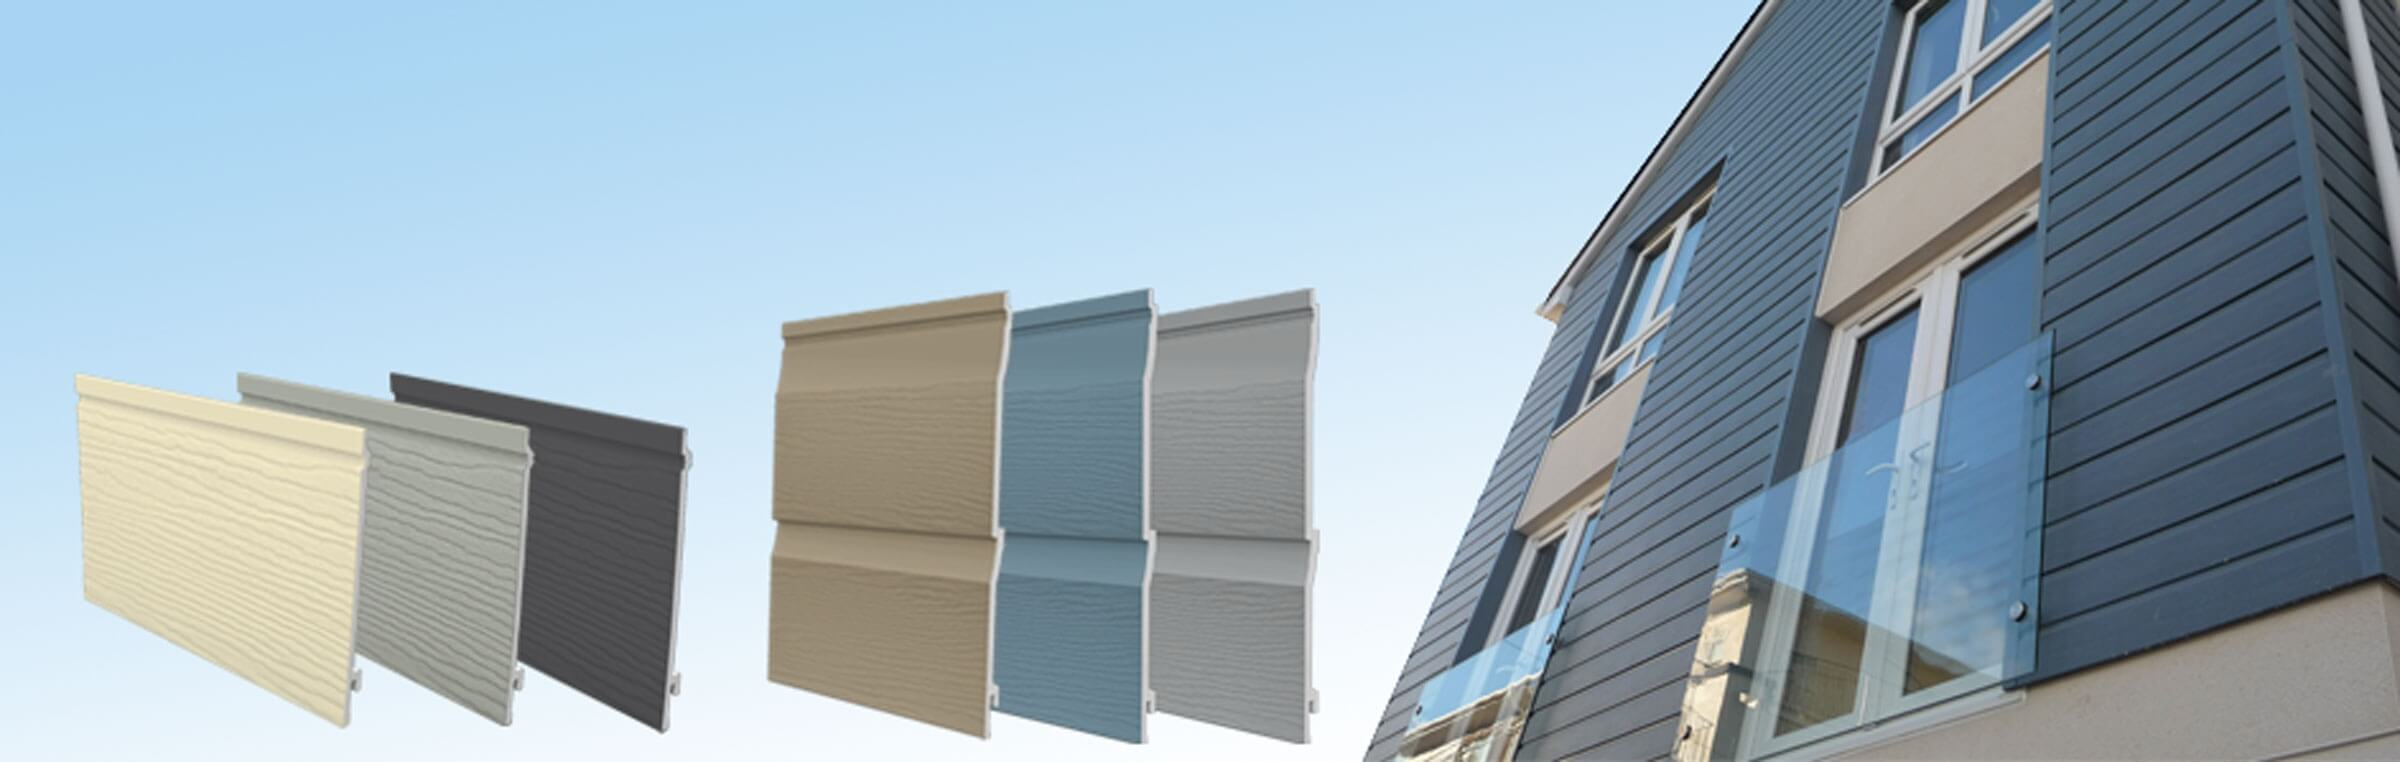 Fortex_Cladding